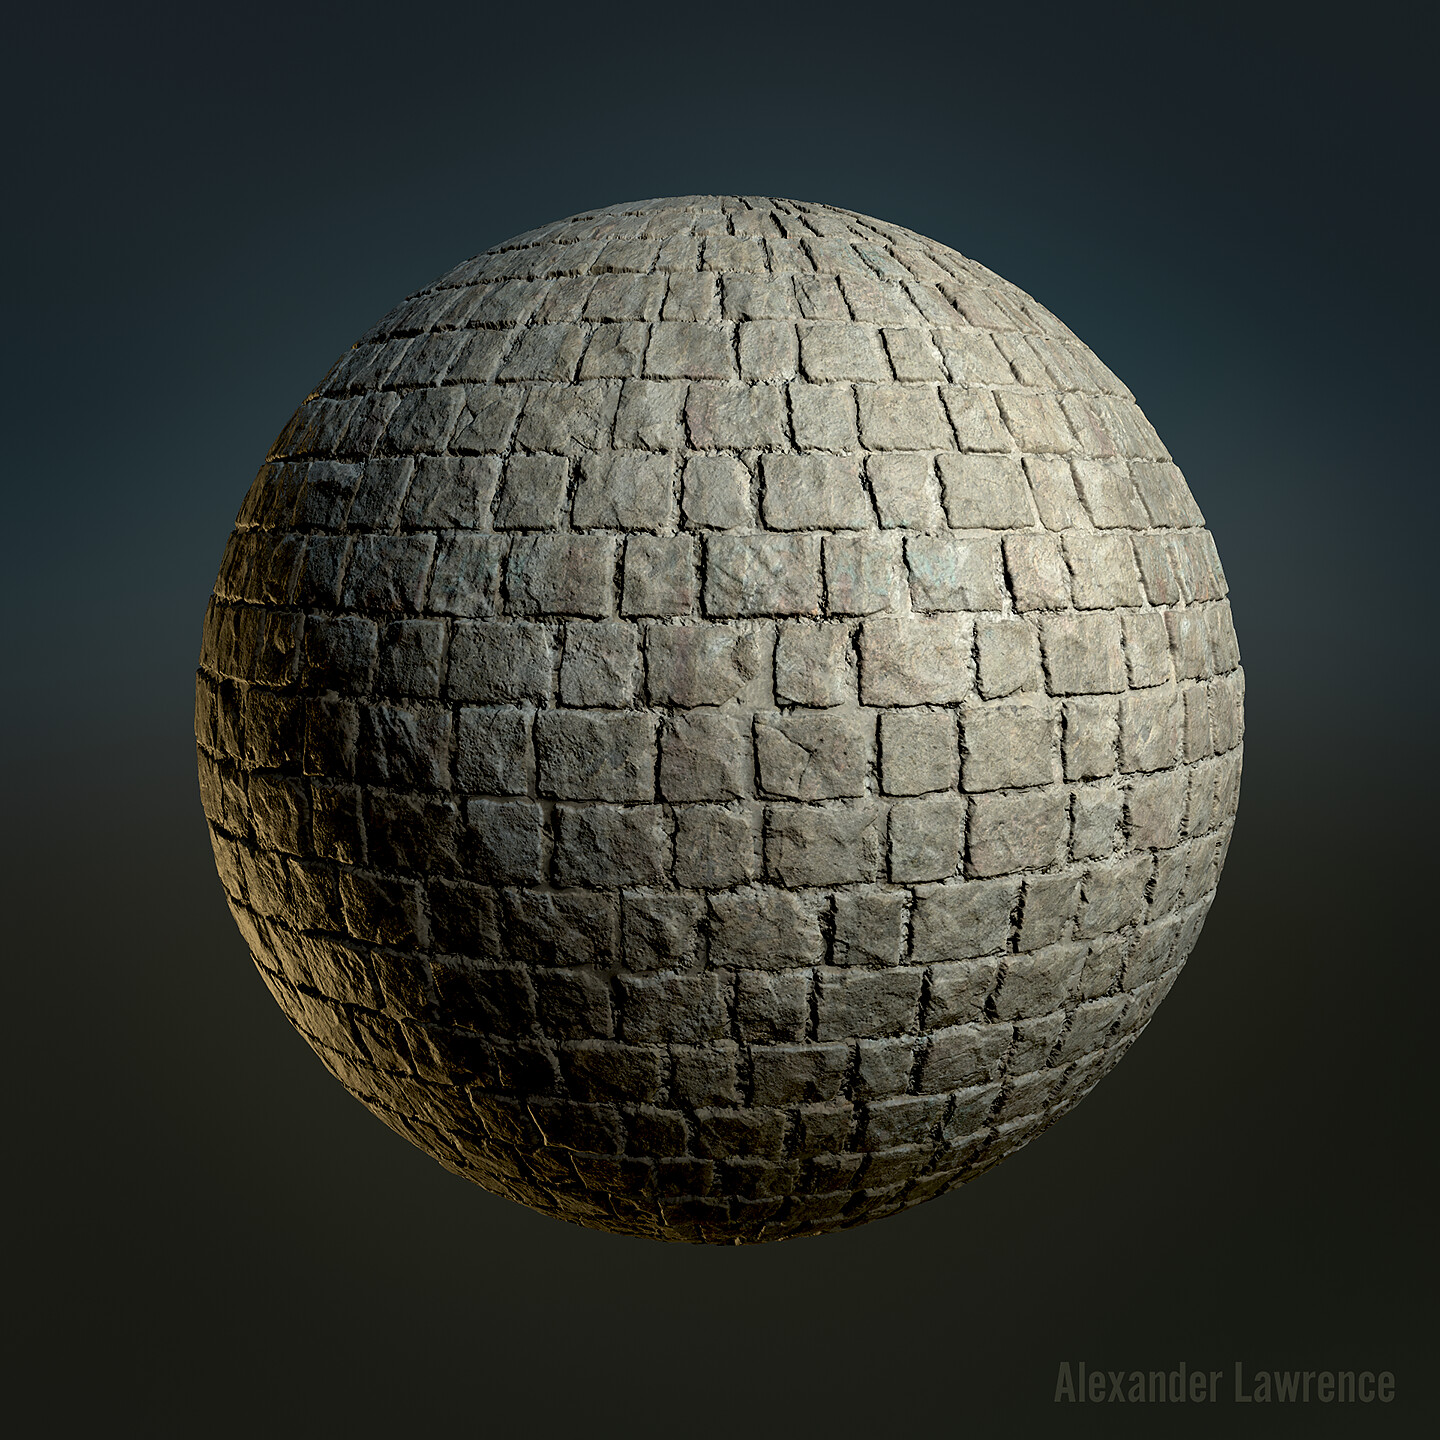 One of the primary wall materials. The albedo is intentionally left somewhat bland and uniform so that I can multiply grunge over it in the Unreal material editor. Heightmap generated in Zbrush.